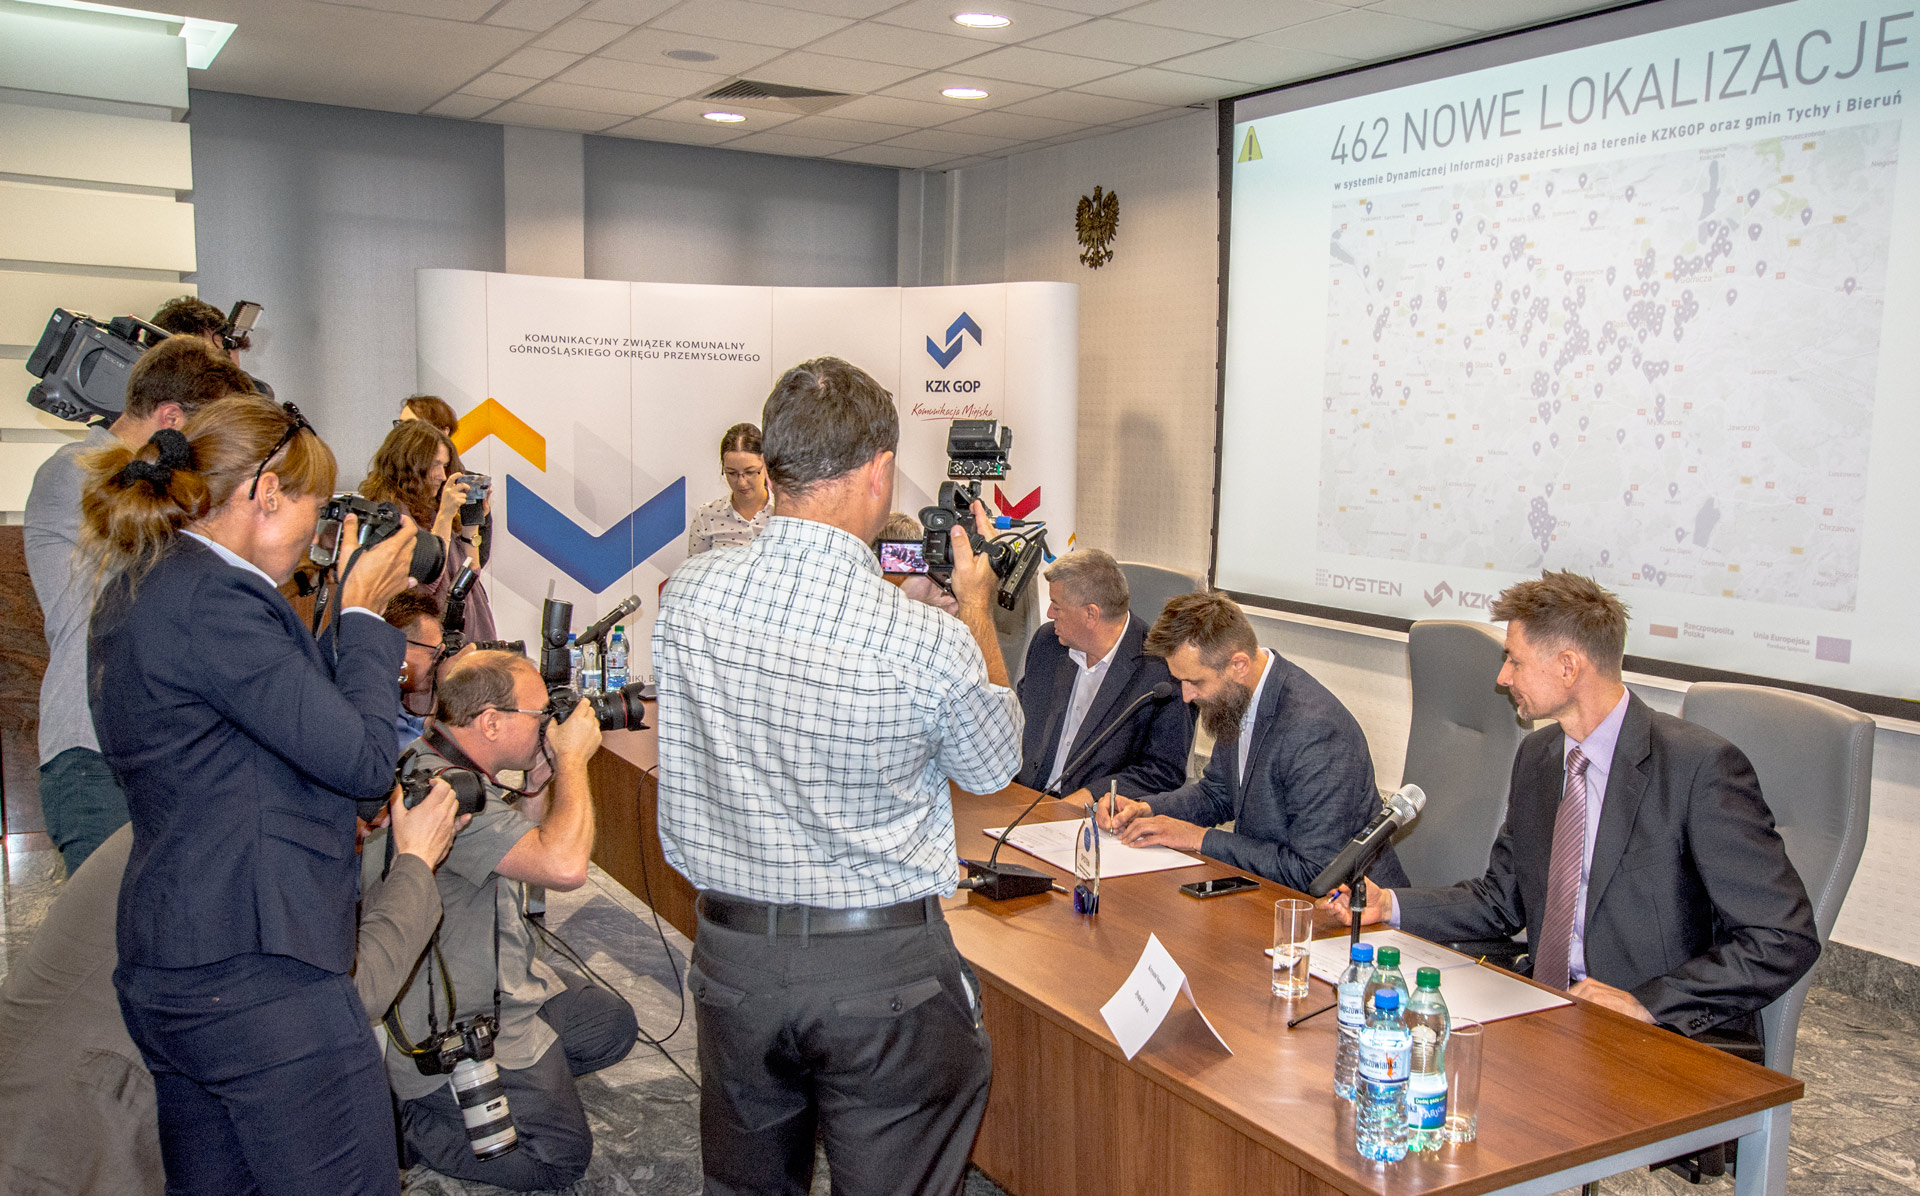 The Conference Press regarding the biggest ITS contract in Poland